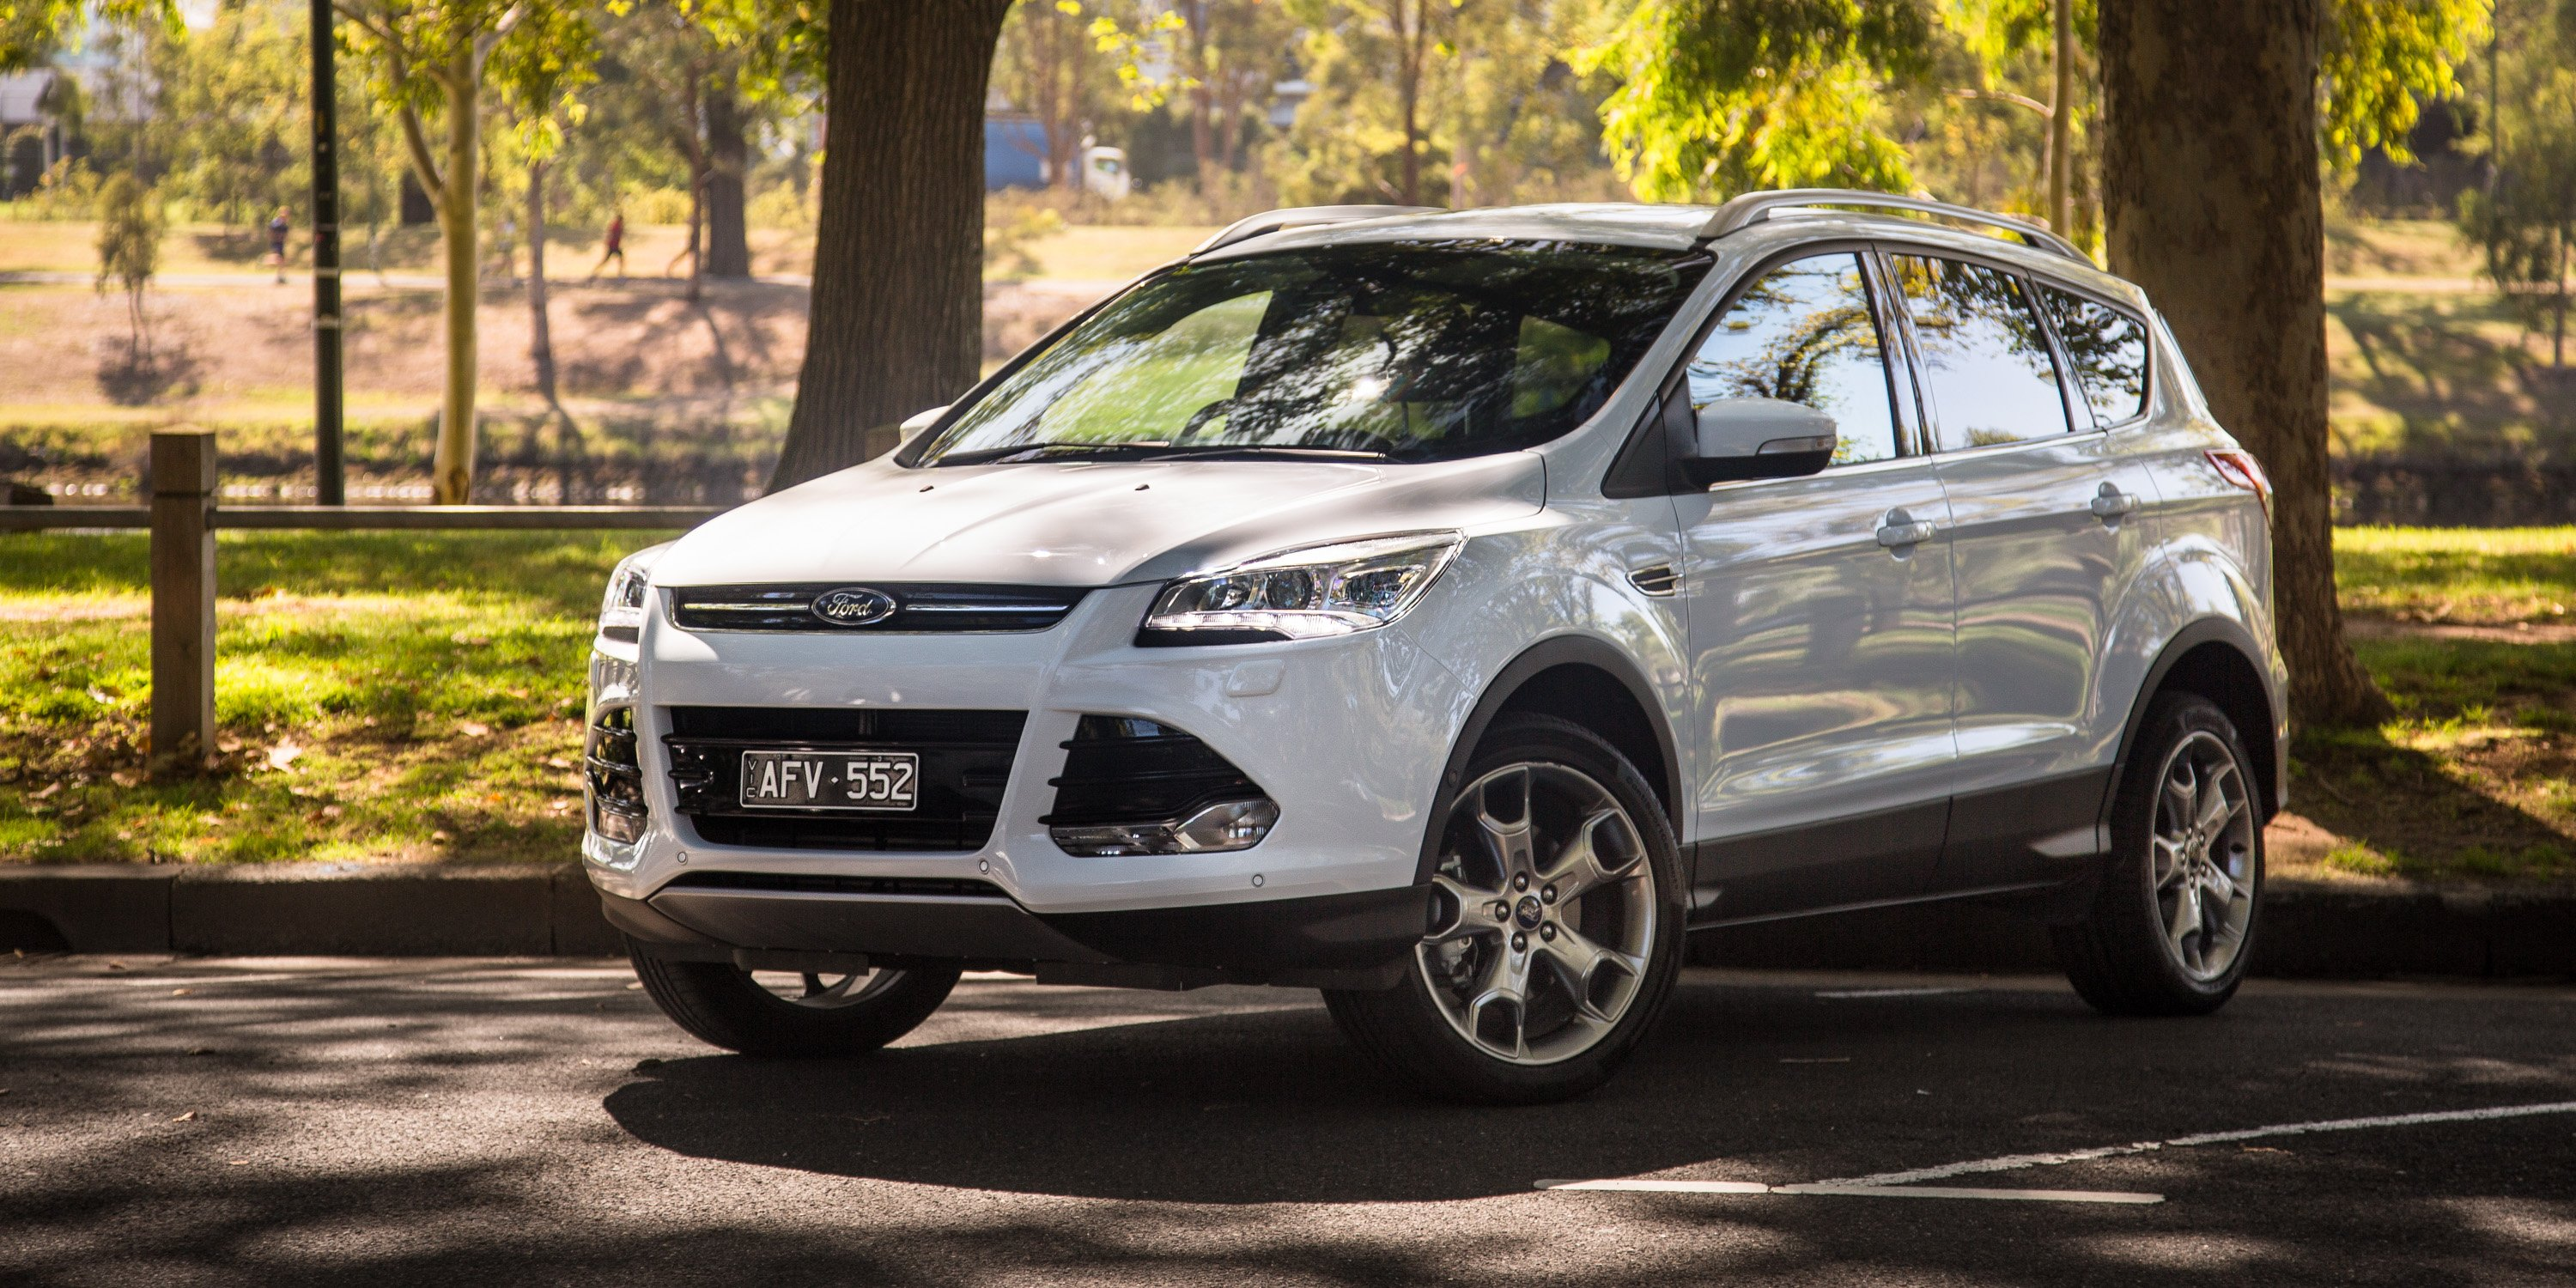 2016 ford kuga titanium review photos caradvice. Black Bedroom Furniture Sets. Home Design Ideas